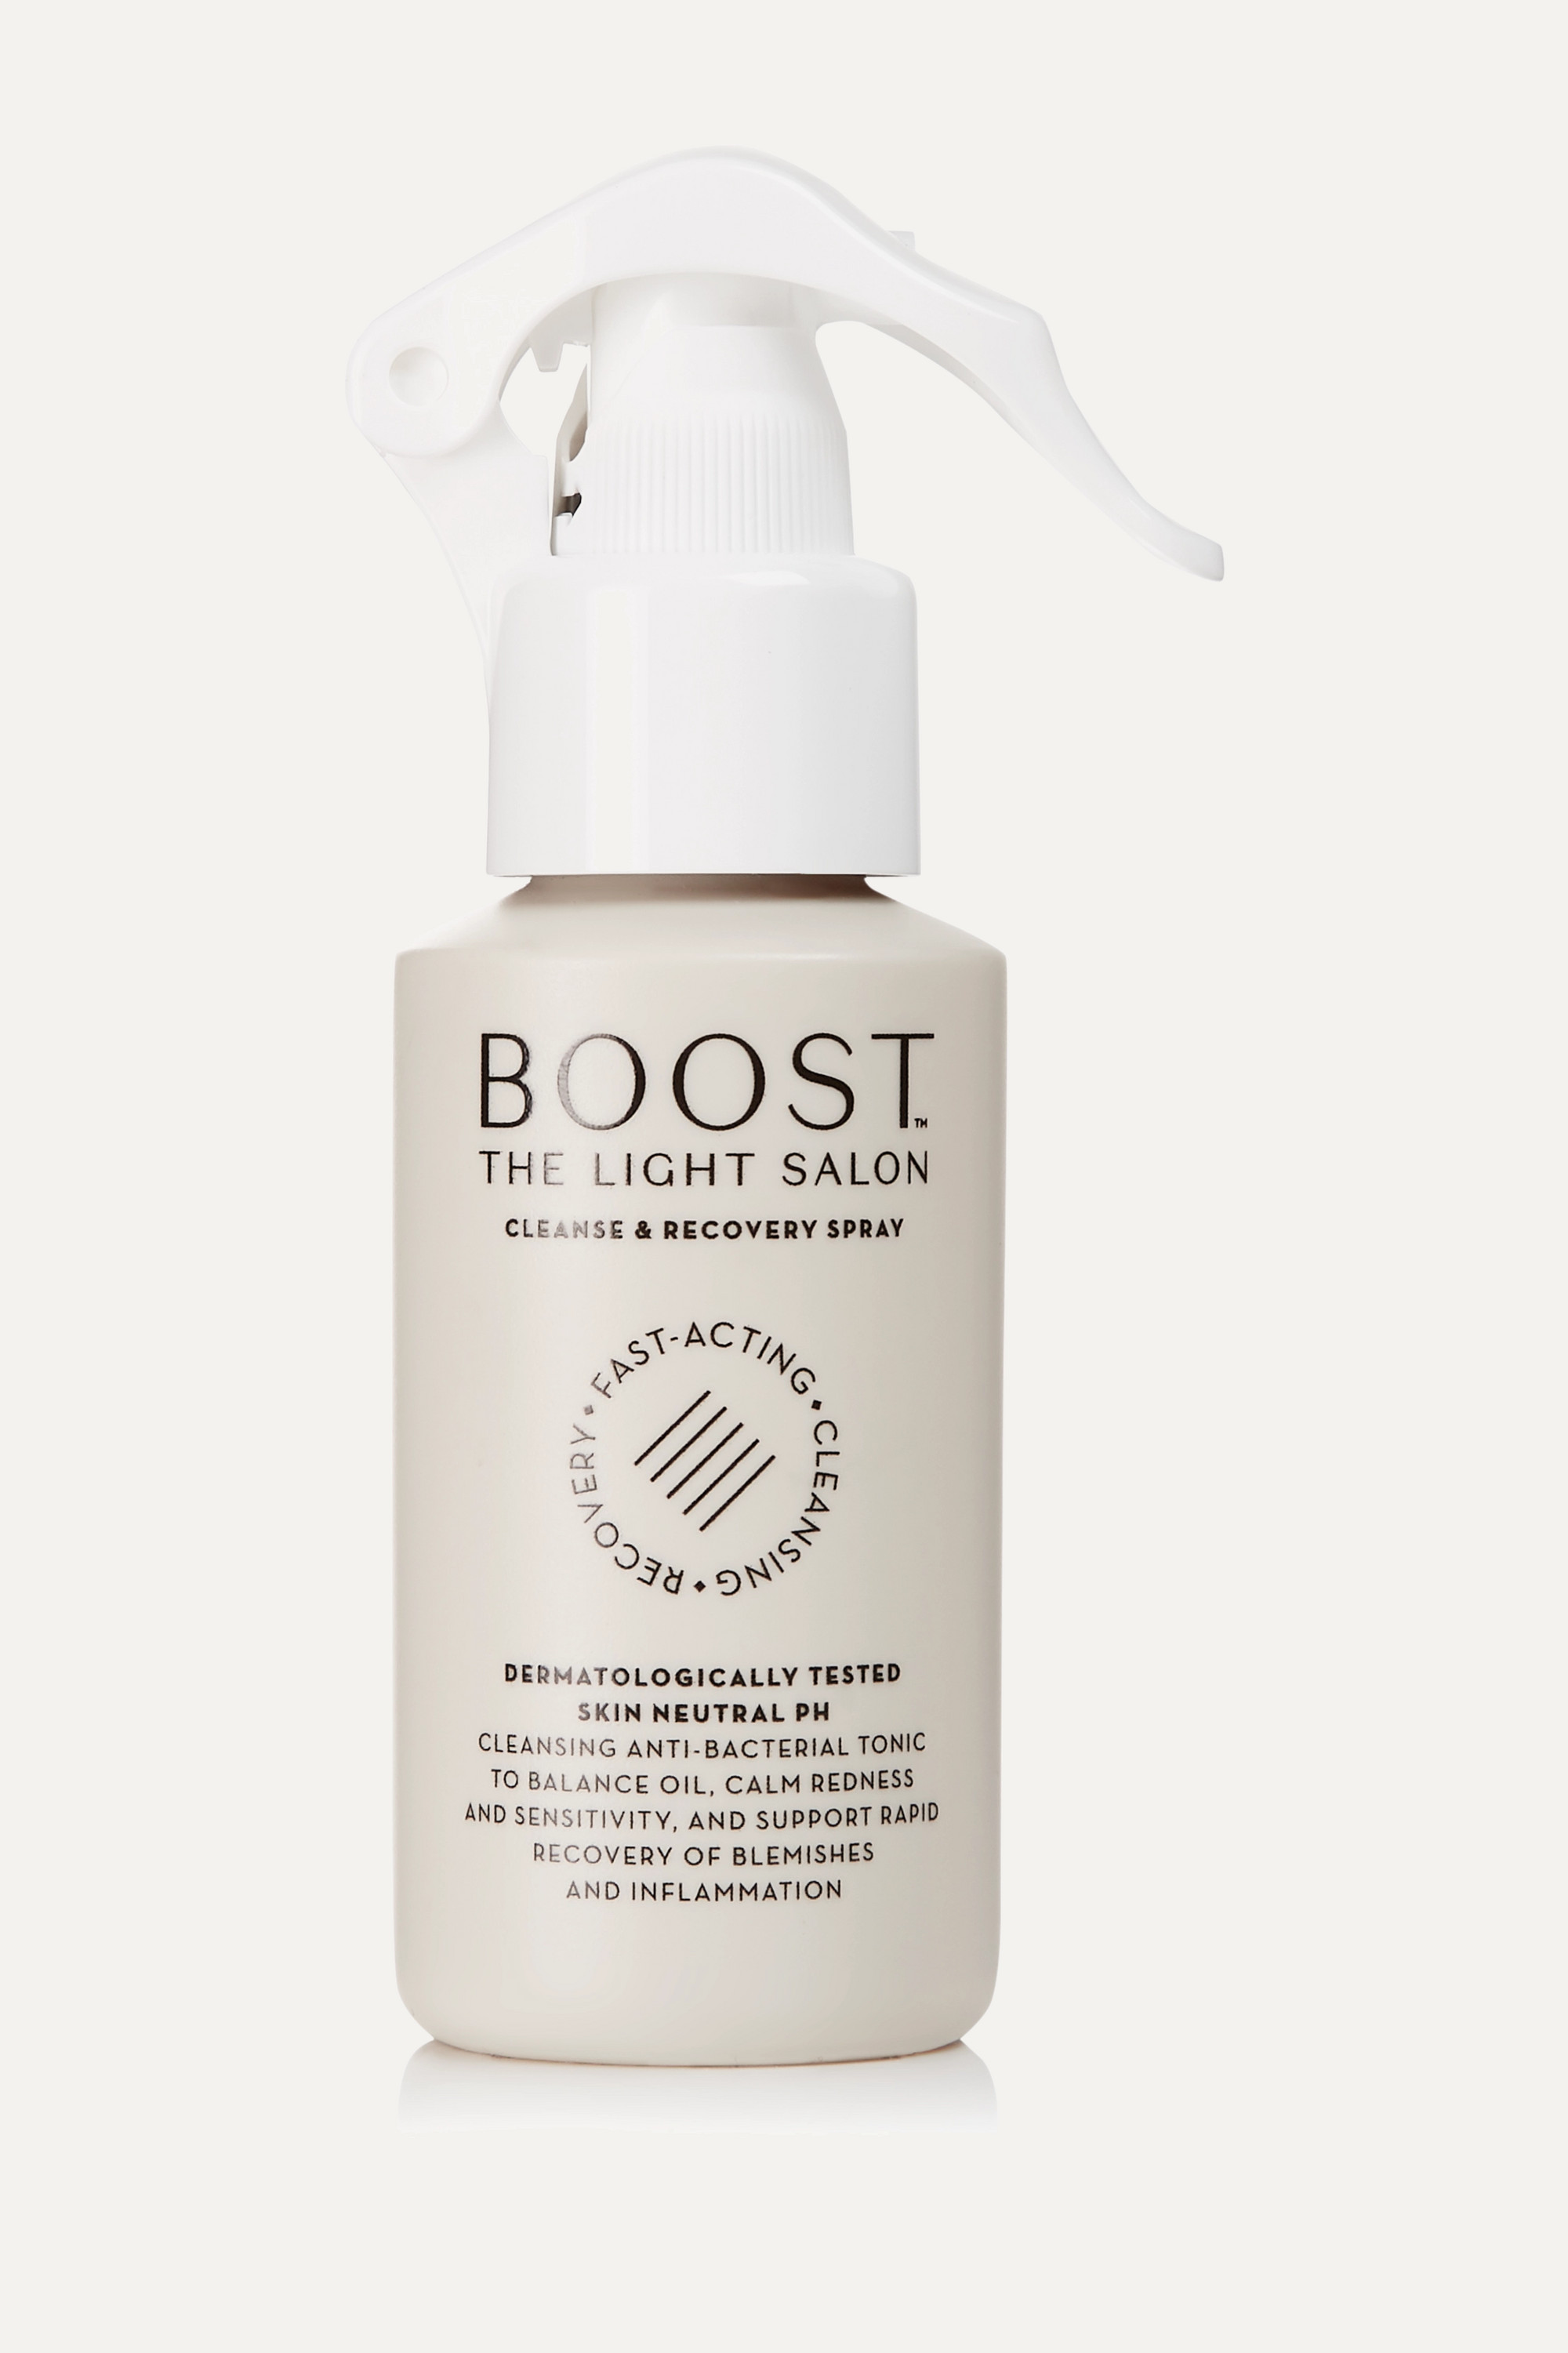 THE LIGHT SALON Cleanse & Recovery Spray, 100ml